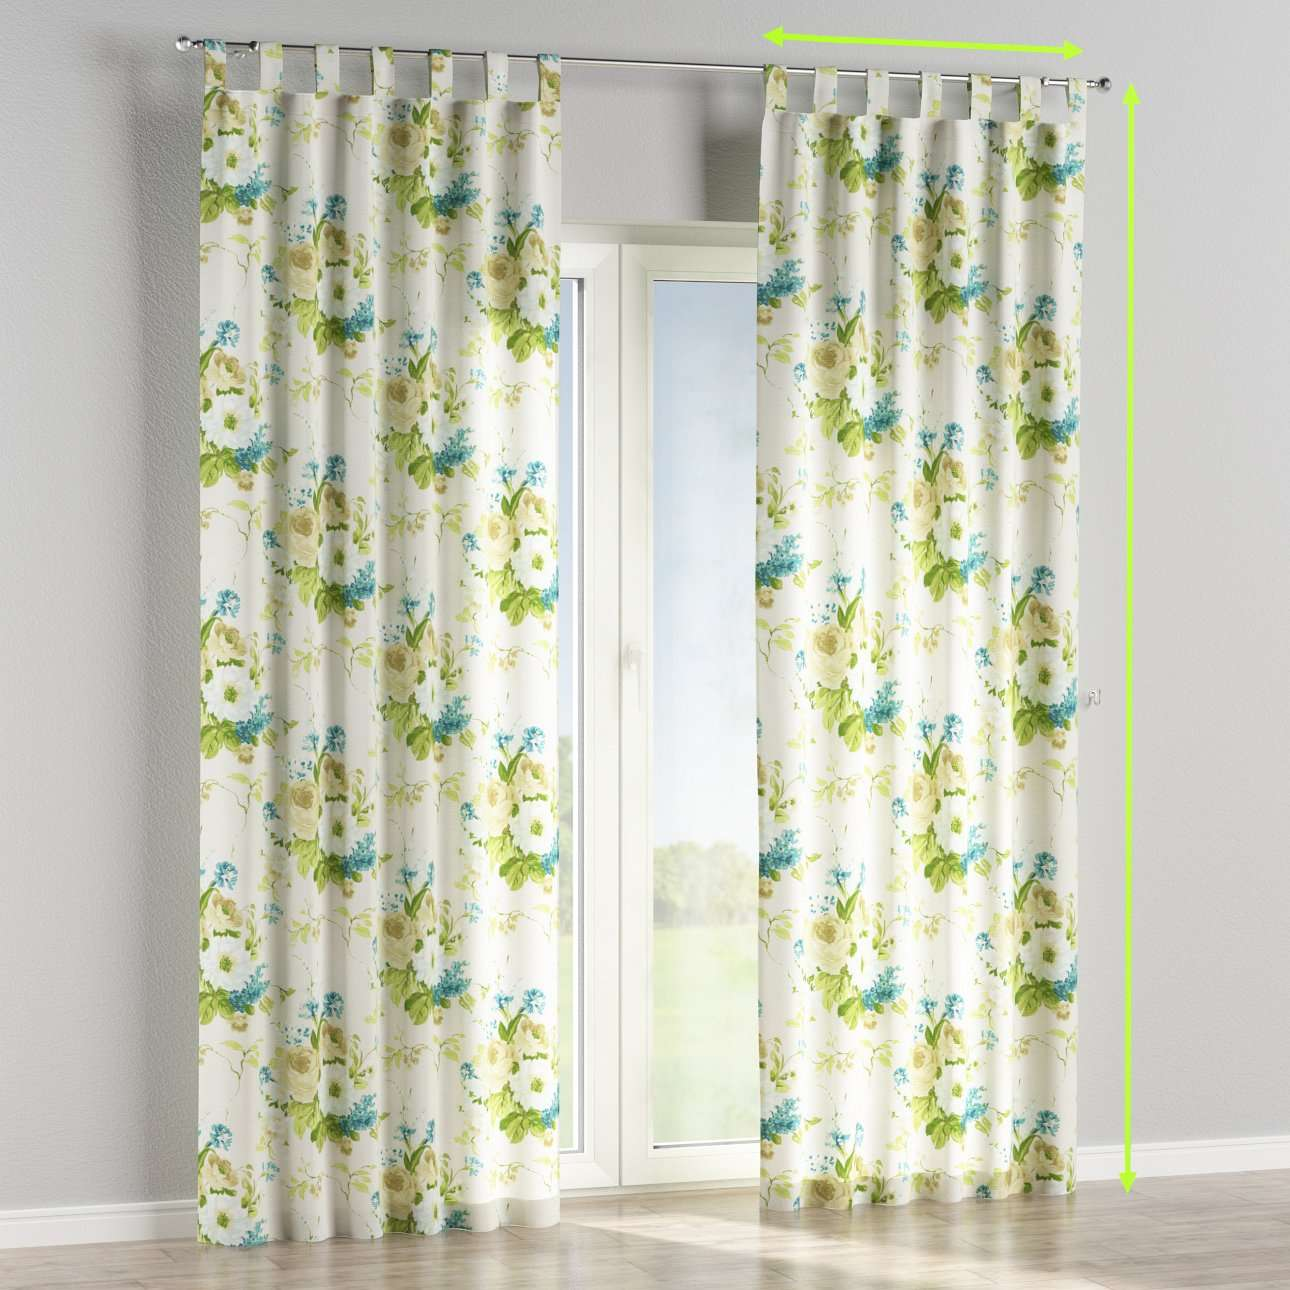 Tab top curtains in collection Mirella, fabric: 141-15